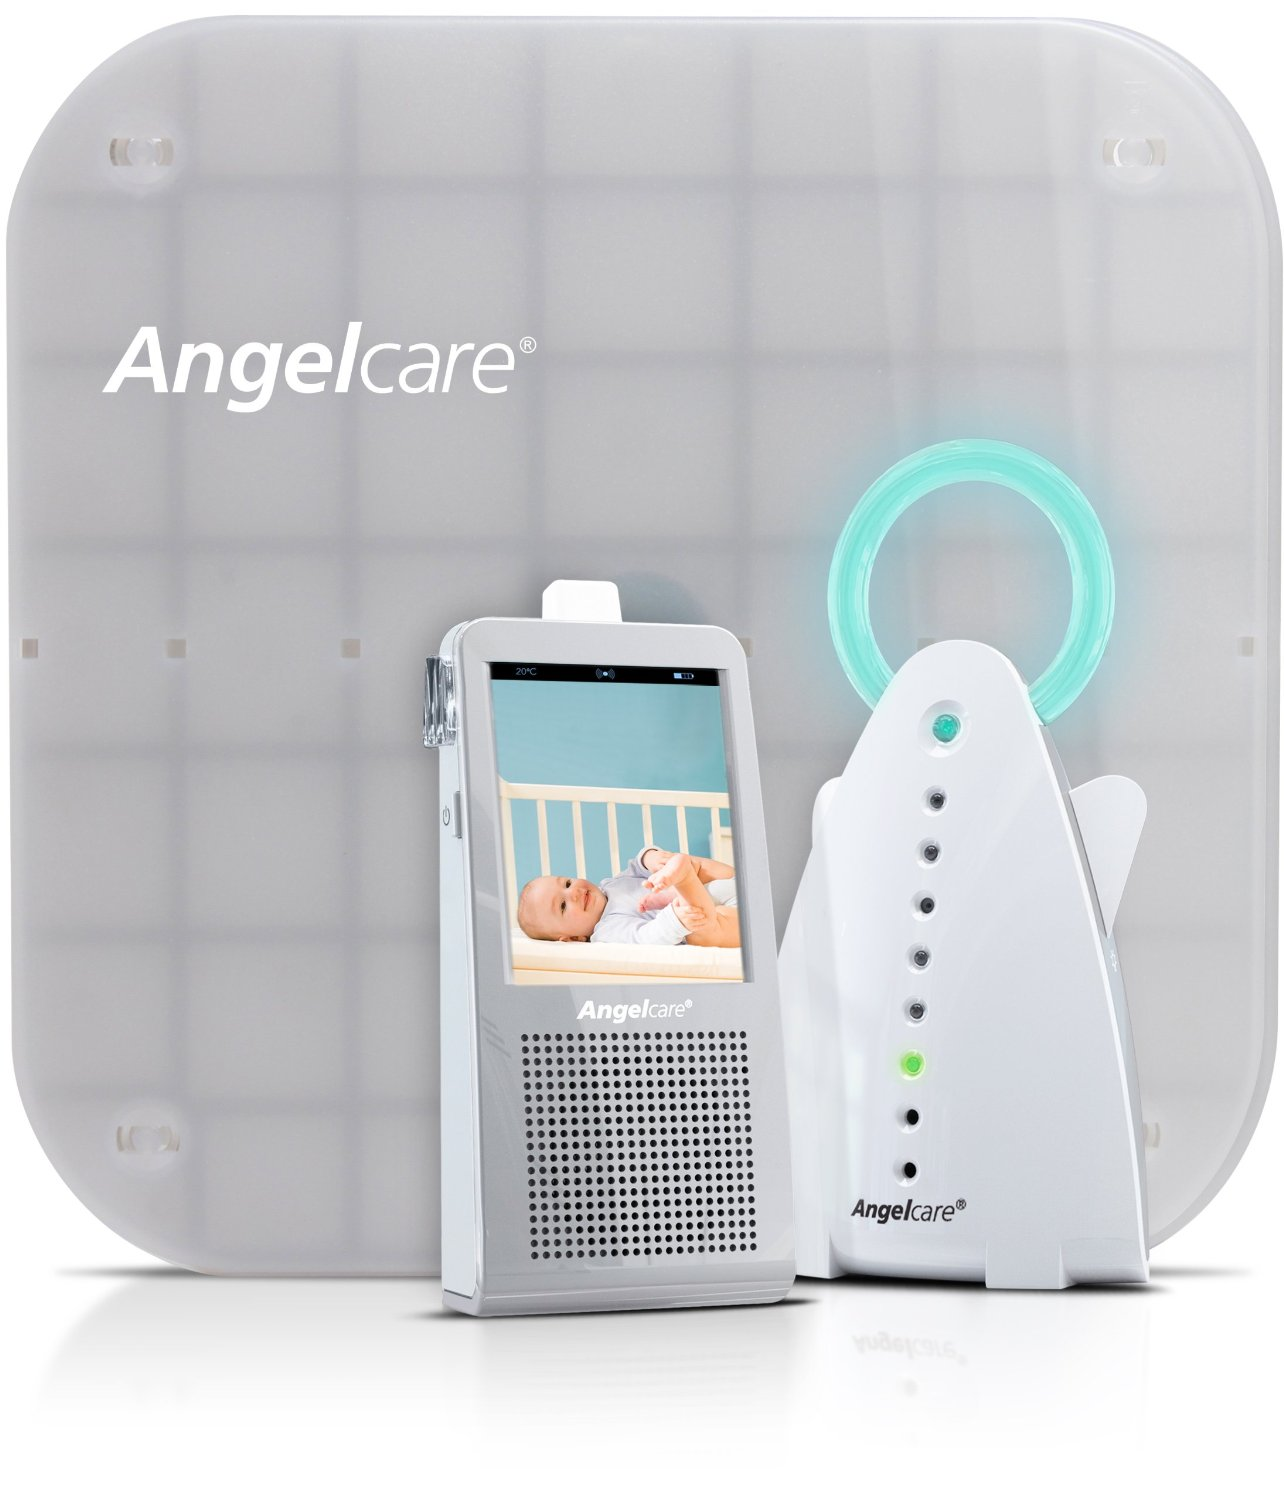 Best Video Baby Monitor 2013 14 Great For Kids